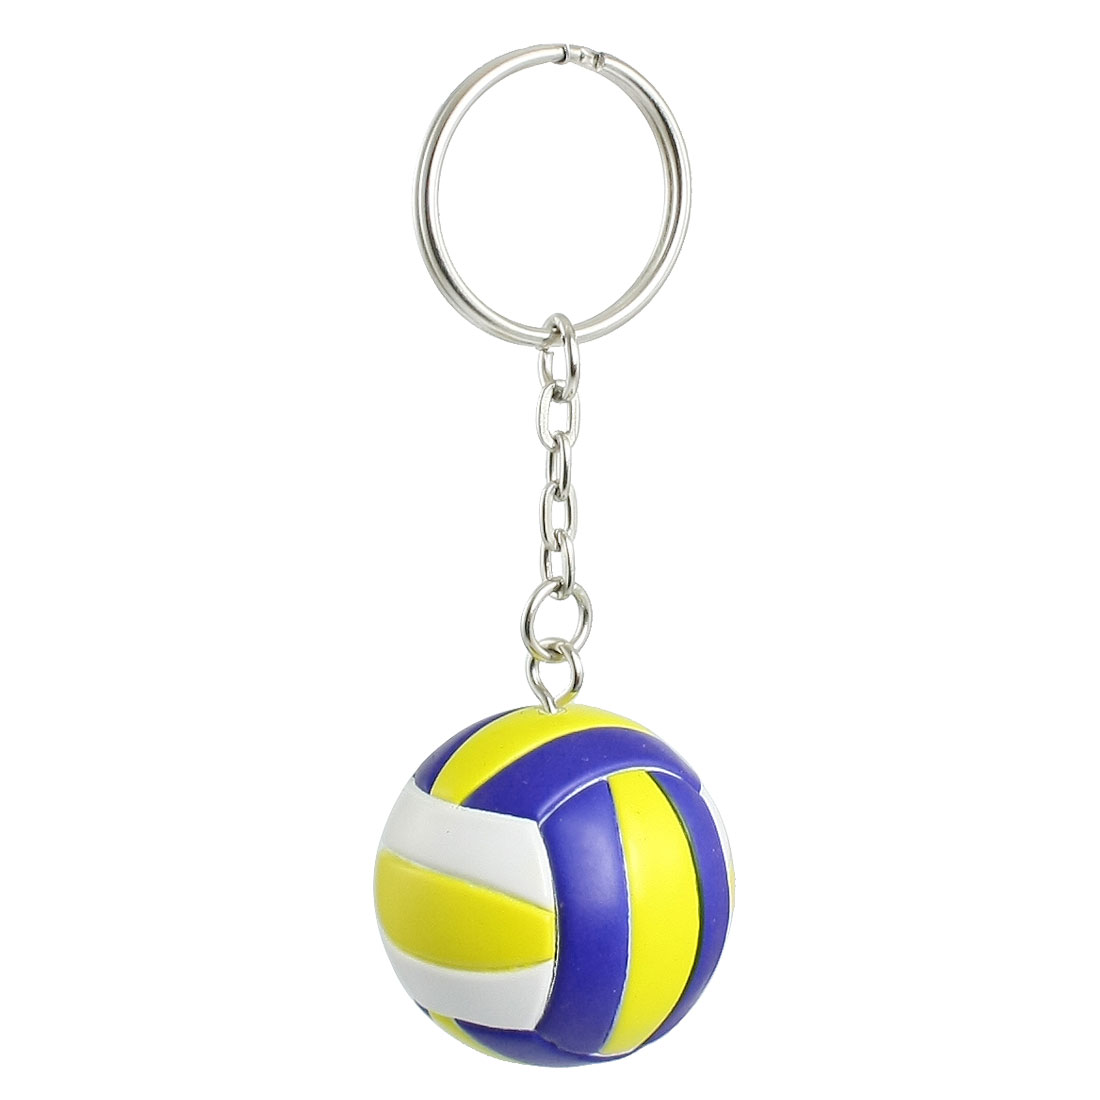 White Yellow Blue Ball Charm Metal Keyring Key Chain Ornament